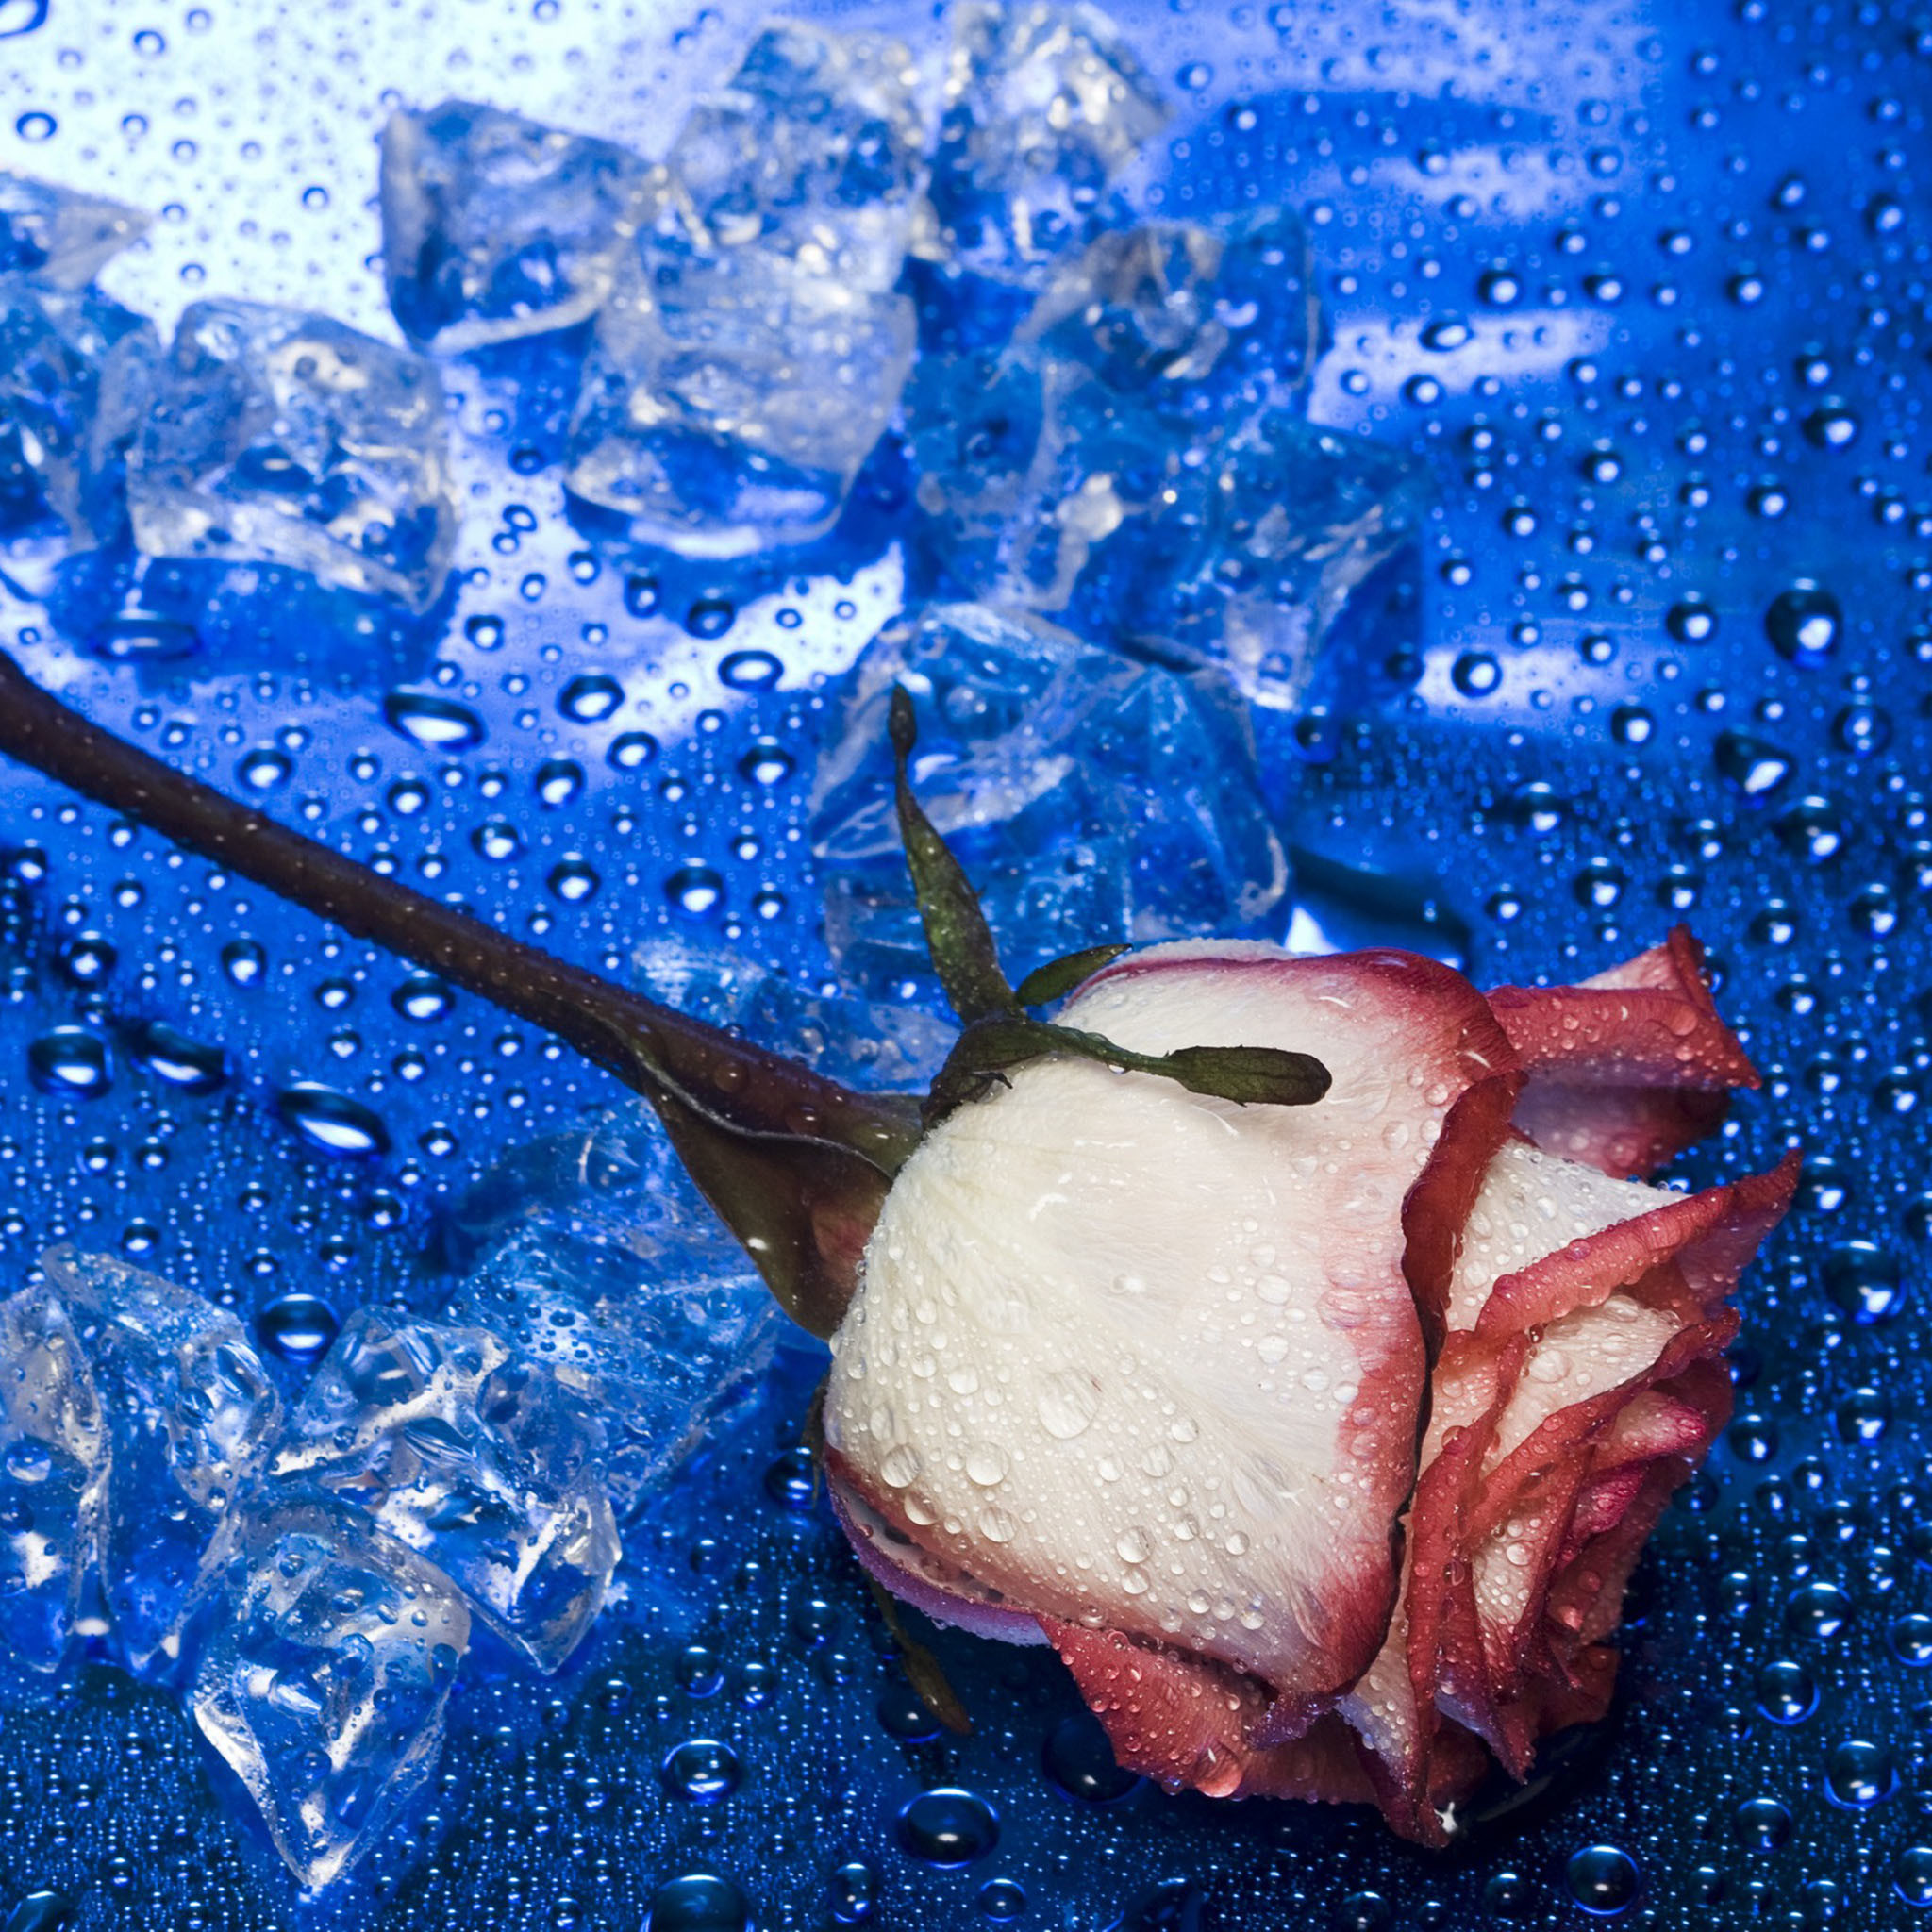 blue heart shaped rose image